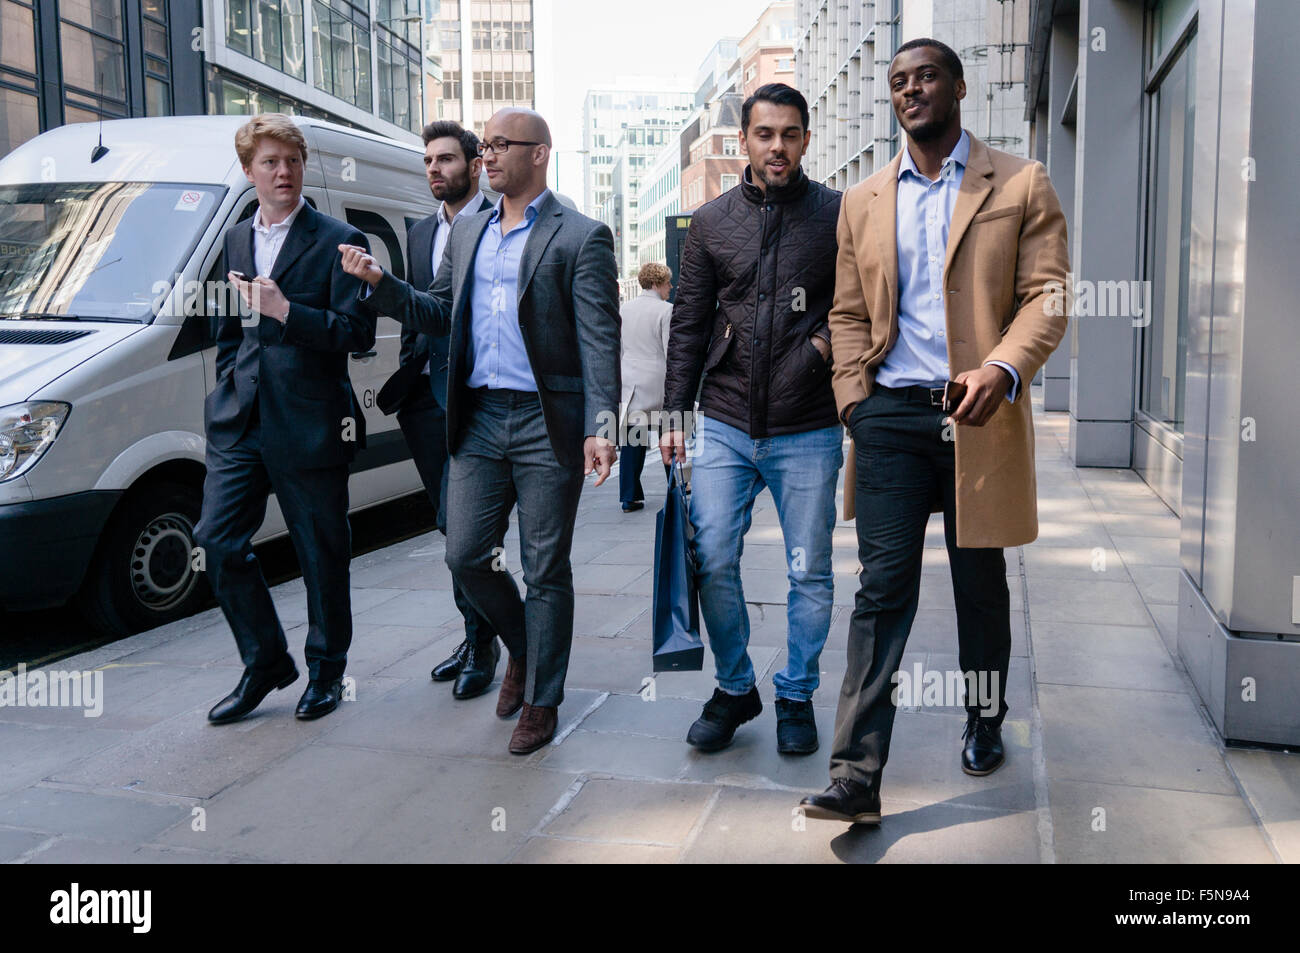 Young men walk down a street in the City of London Stock Photo